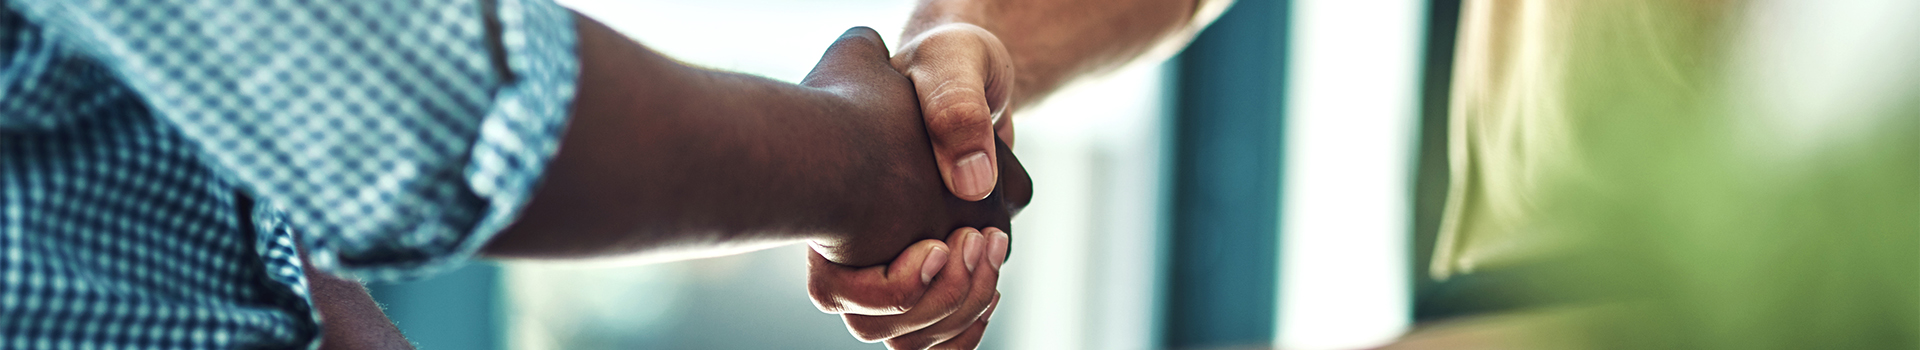 Tech Check Small Business Solutions - Shaking Hands